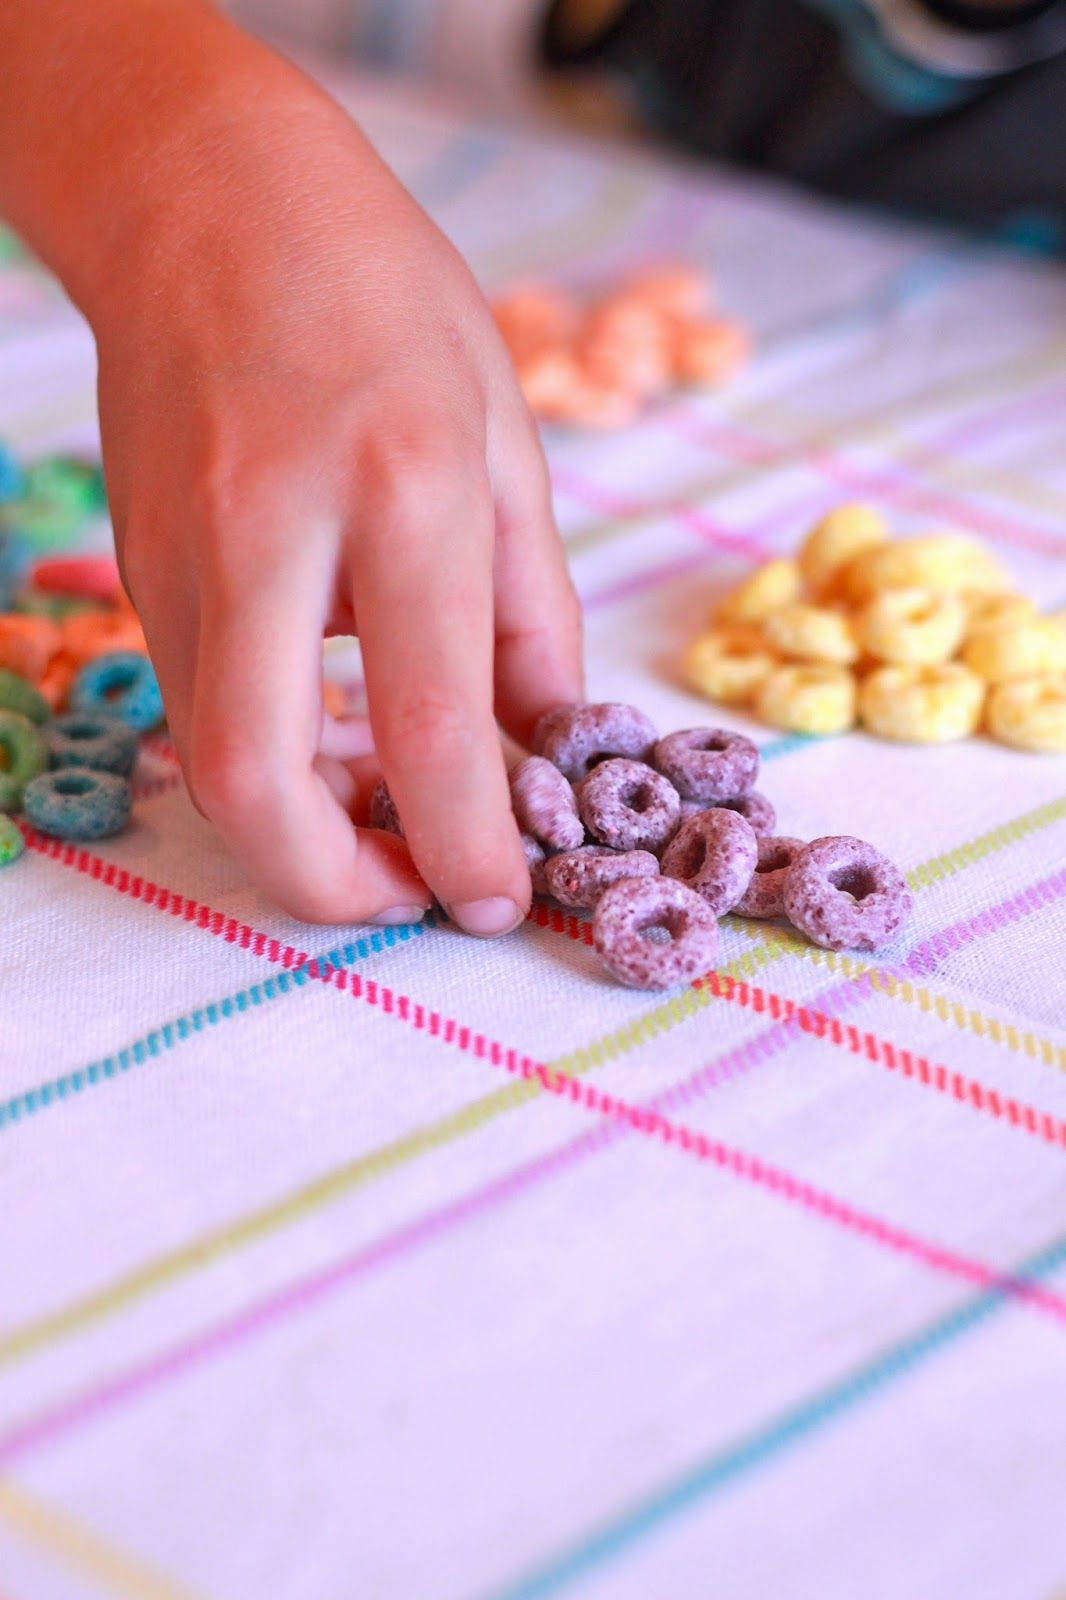 Froot Loop Sand Art with Gospel Colors